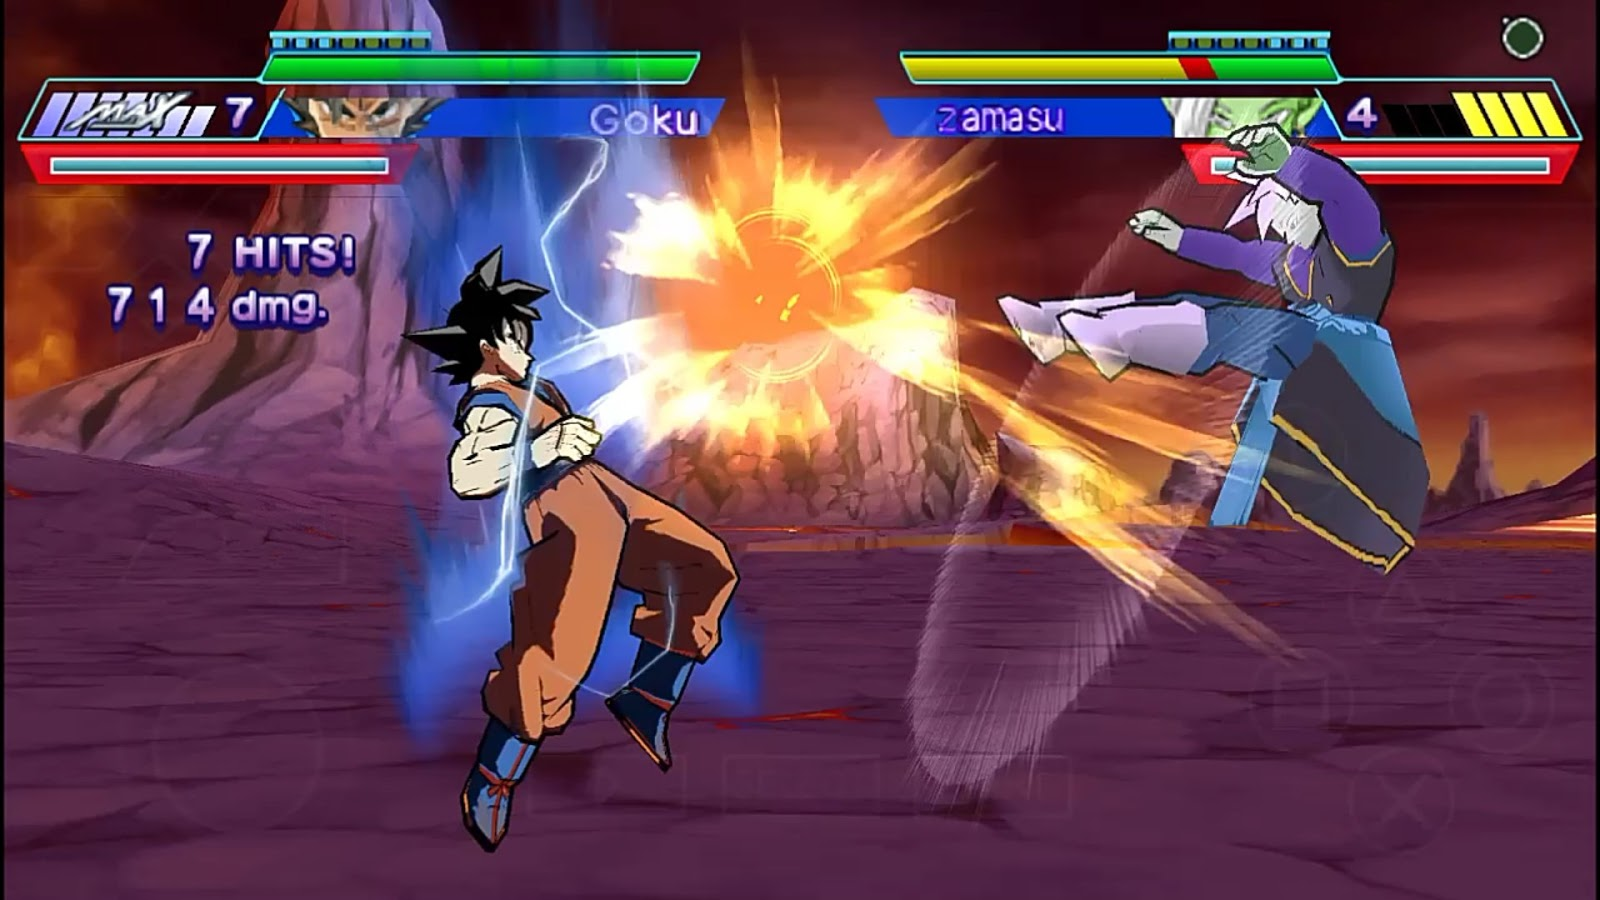 SAIU! Dragon Ball Z Shin Budokai 6 V2 300Mb PPSSPP Gold ANDROID (+Download)